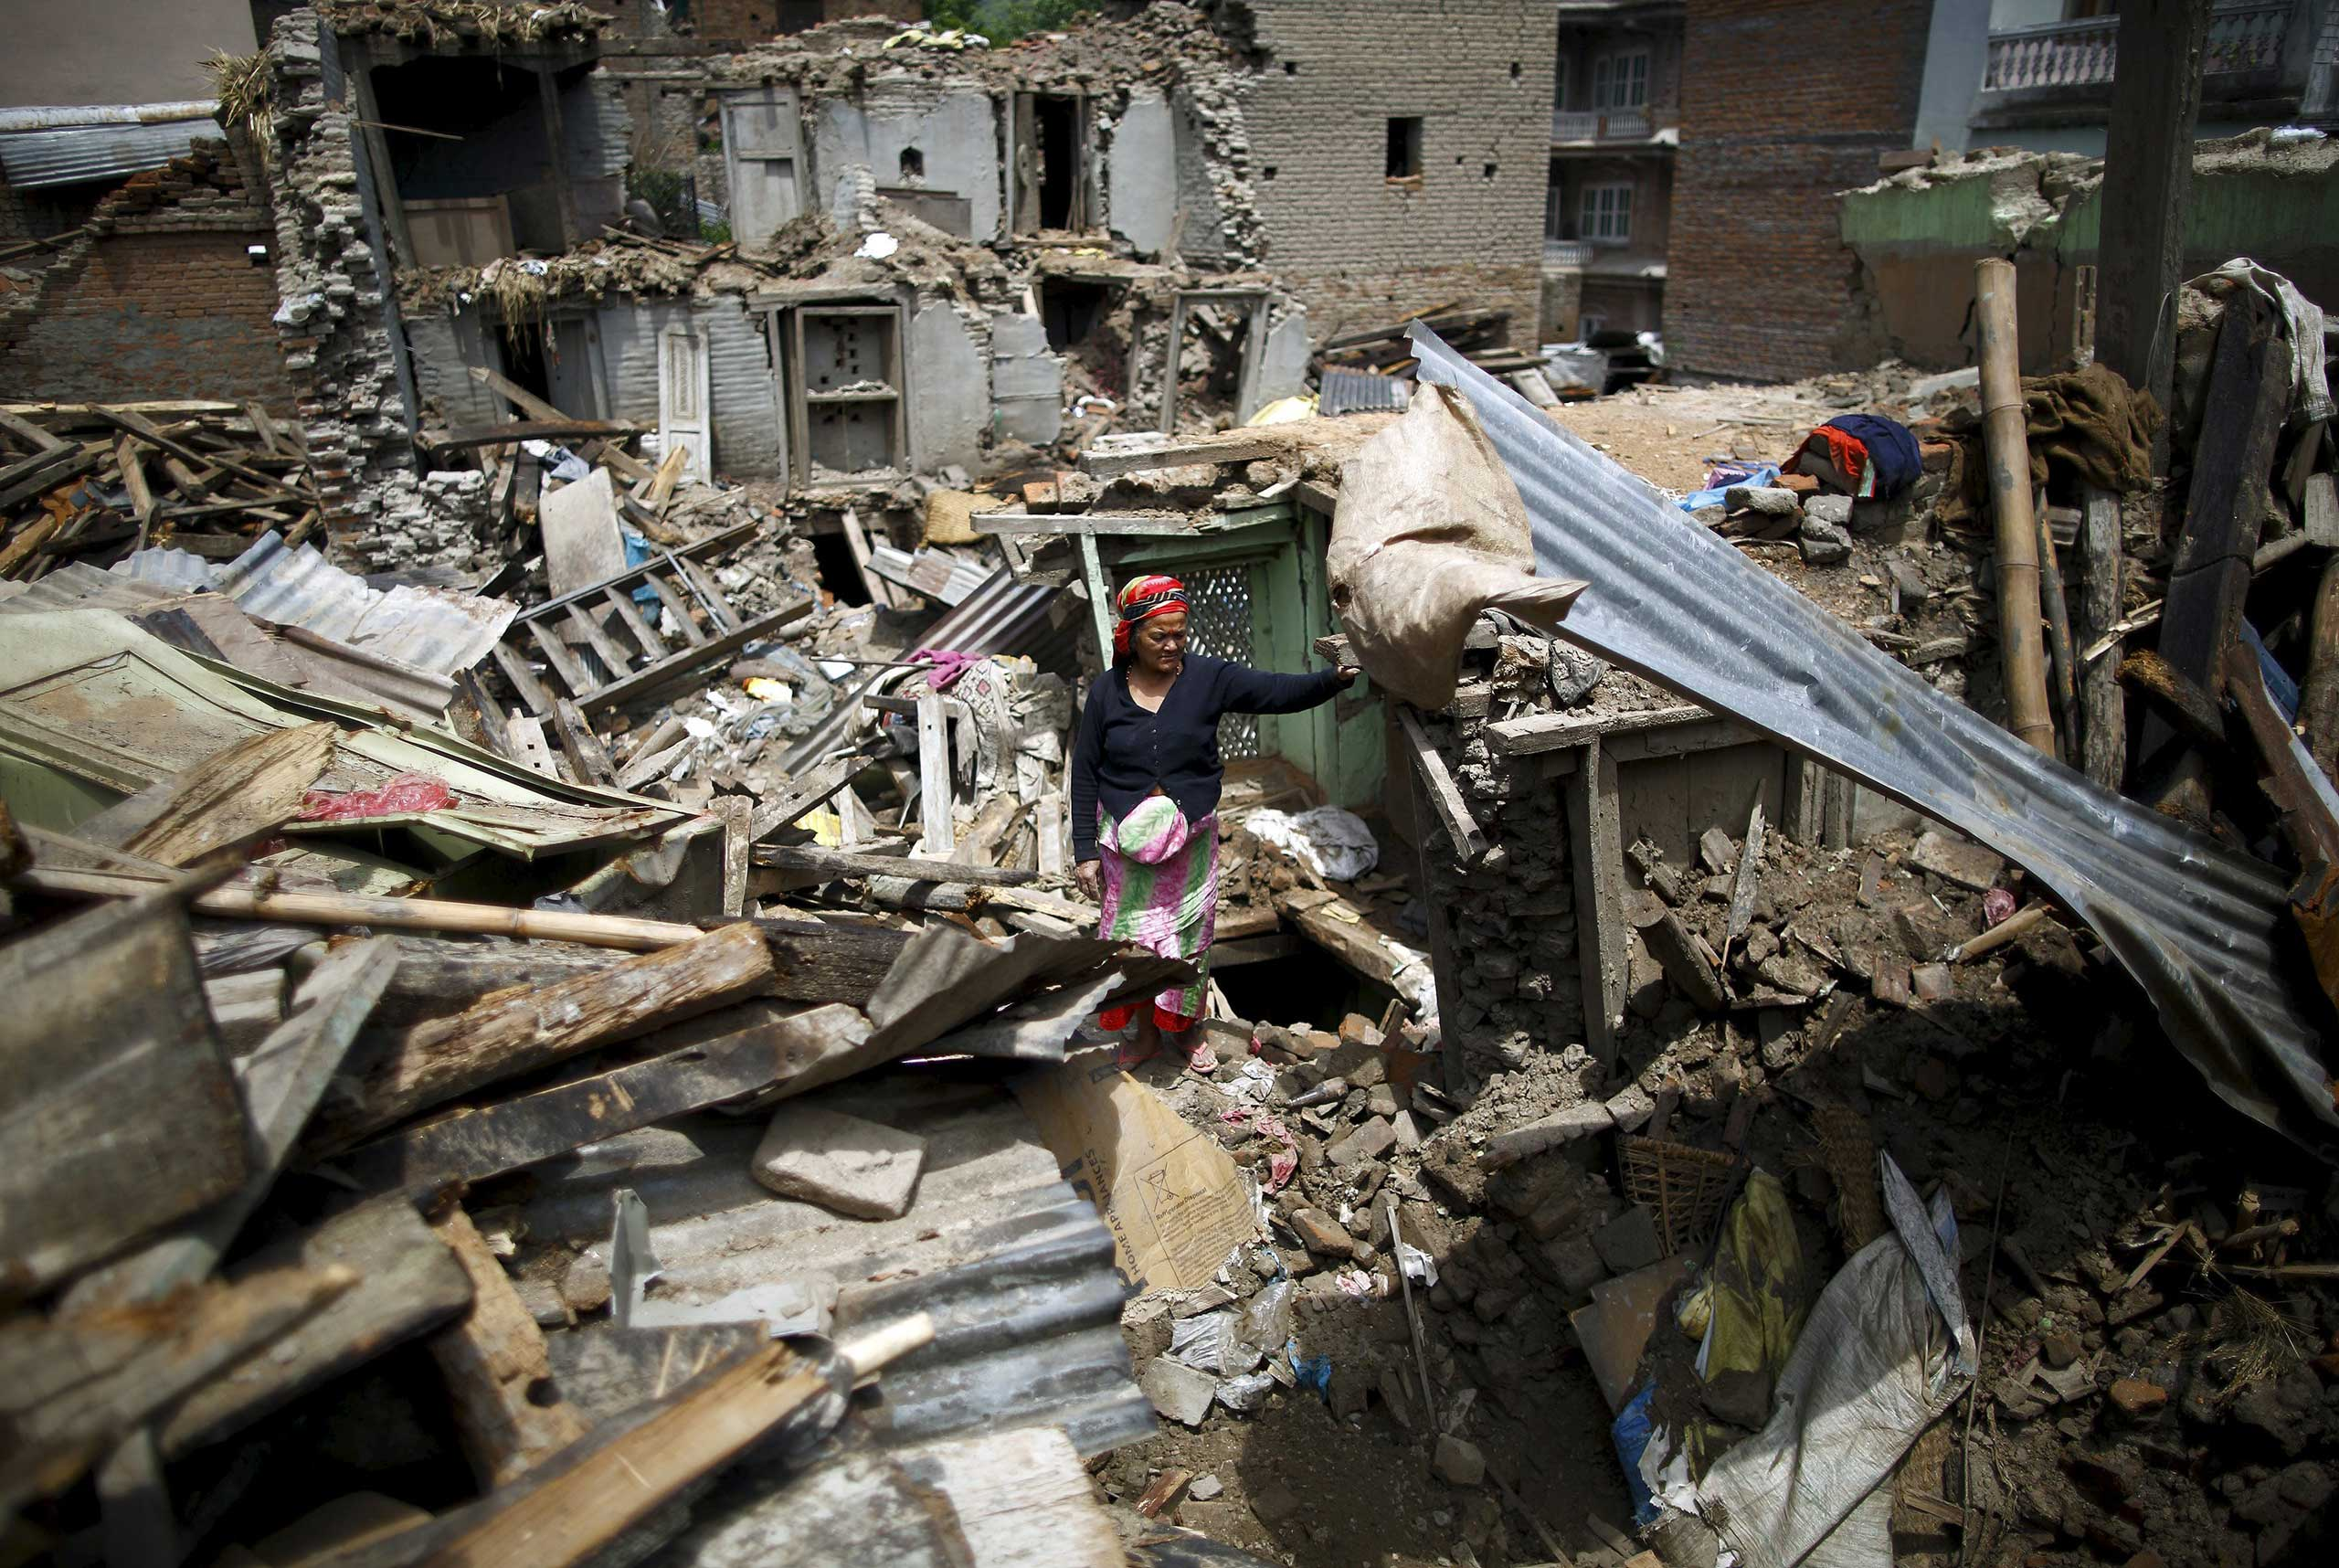 A woman stands on the debris of collapsed houses after a fresh 7.3-magnitude earthquake struck Nepal, in Sankhu on May 12, 2015.